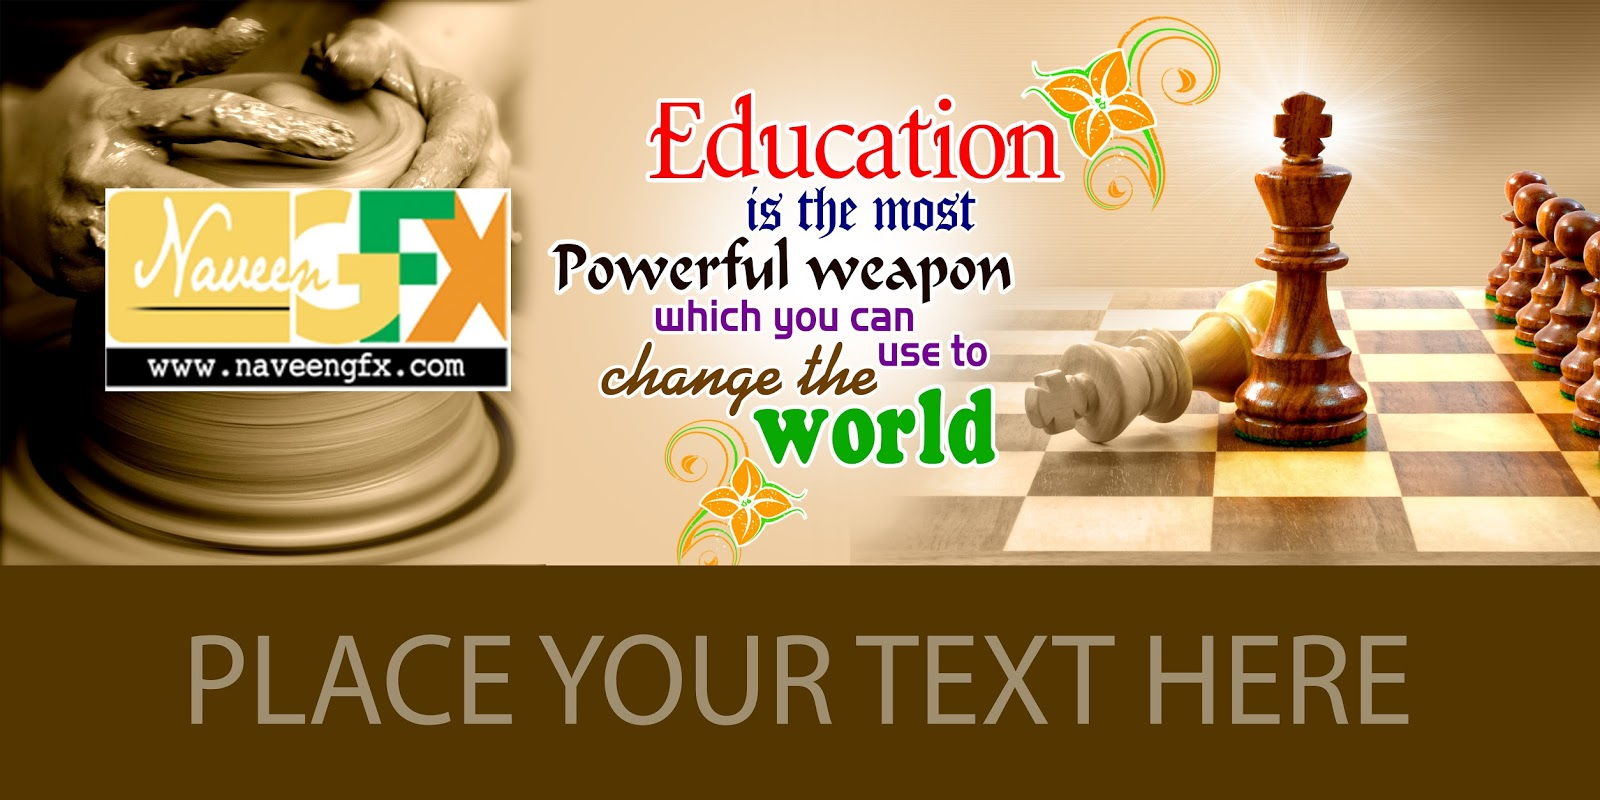 school flex banner design psd background free download